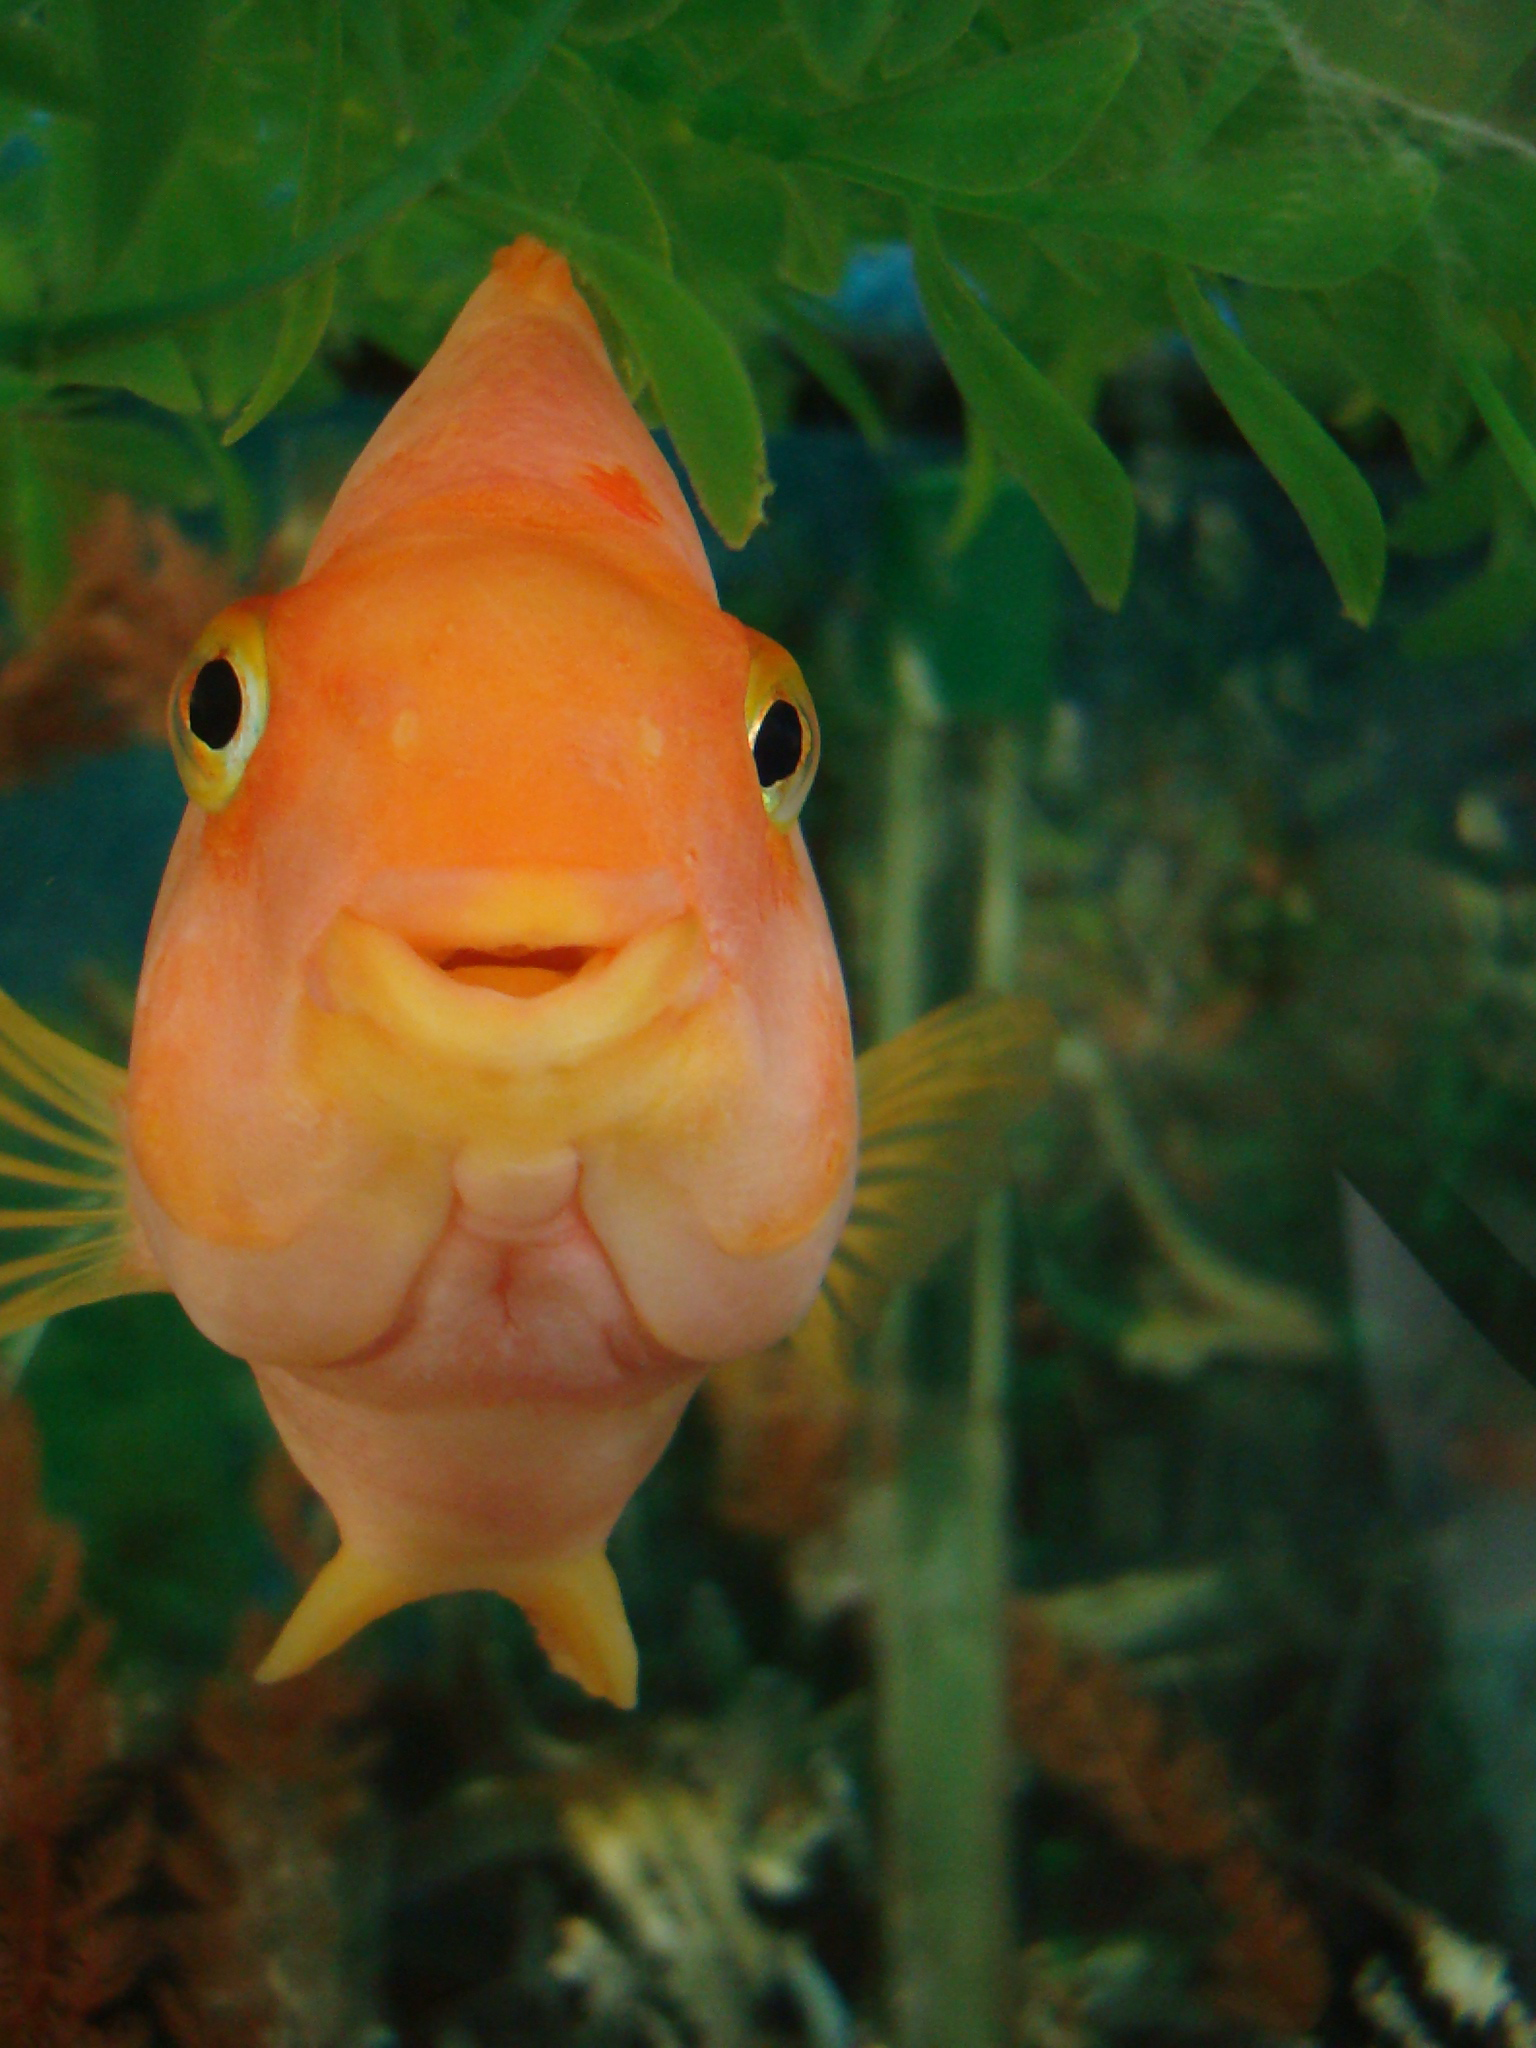 [Image: Smiling_Fish_by_sunriseskies.jpg]